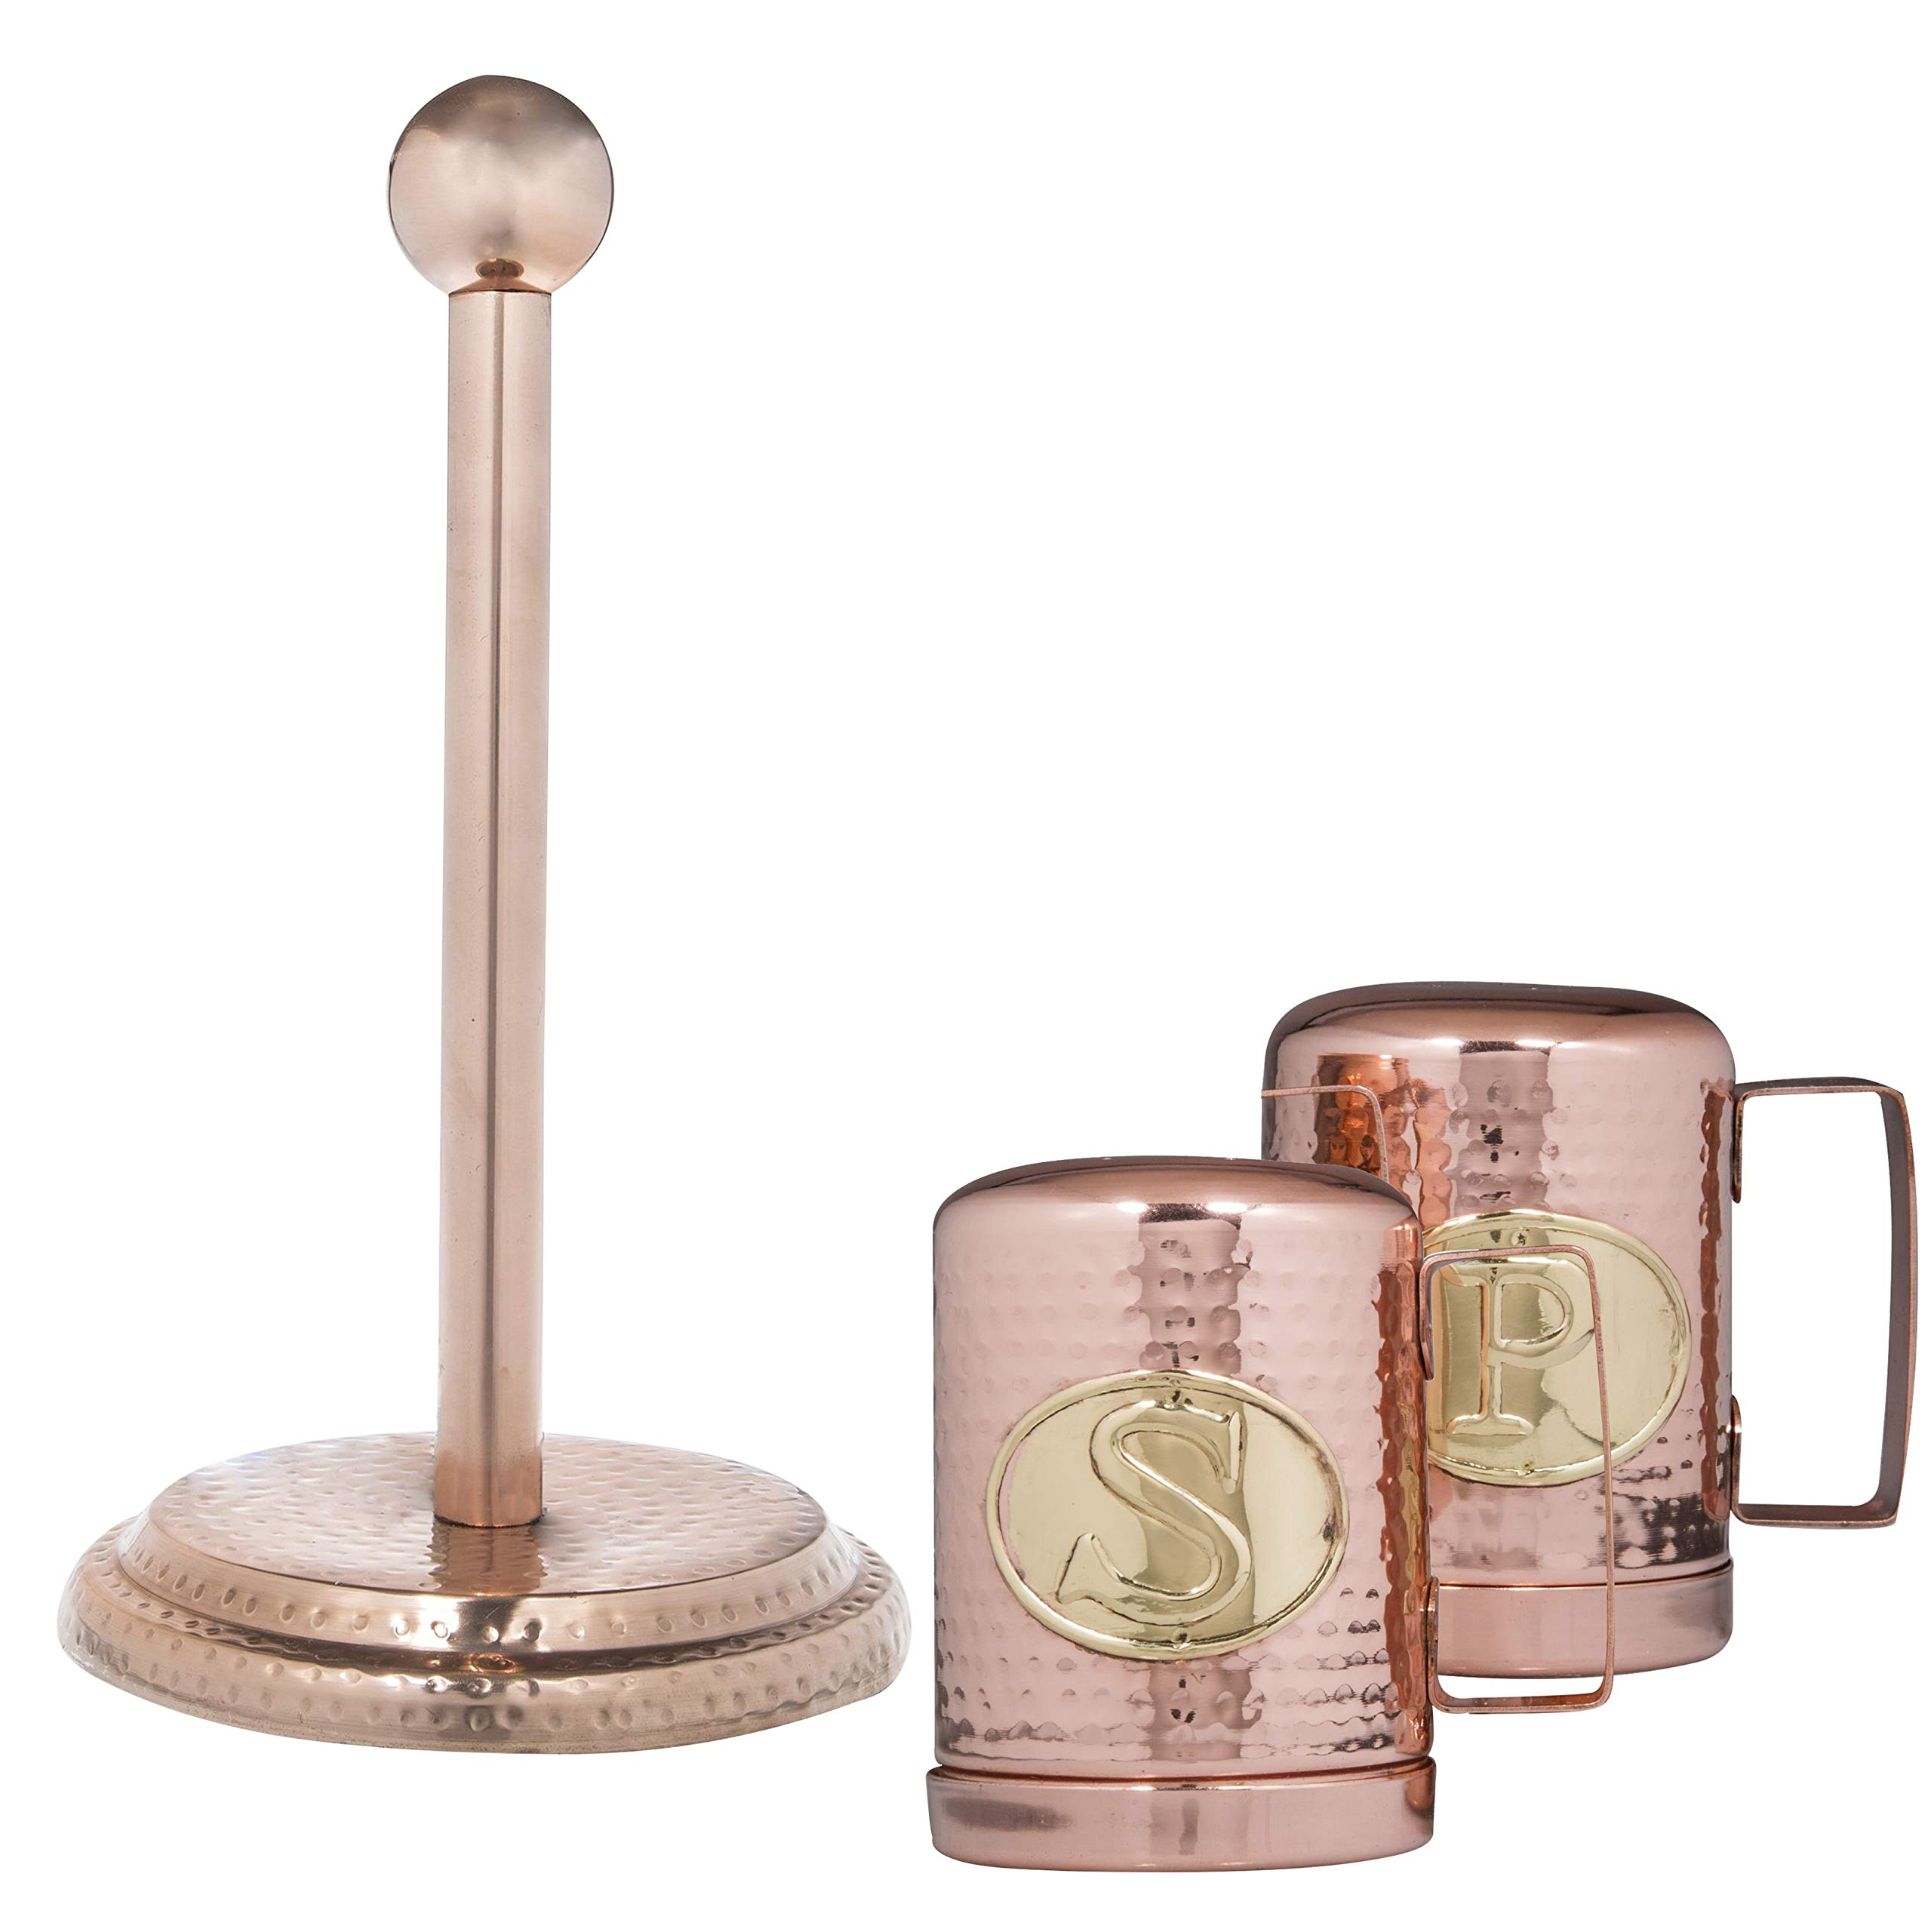 Hammered Copper Finish Stovetop Salt Pepper Shakers and Paper Towel Holder Set by Kitchen Trends